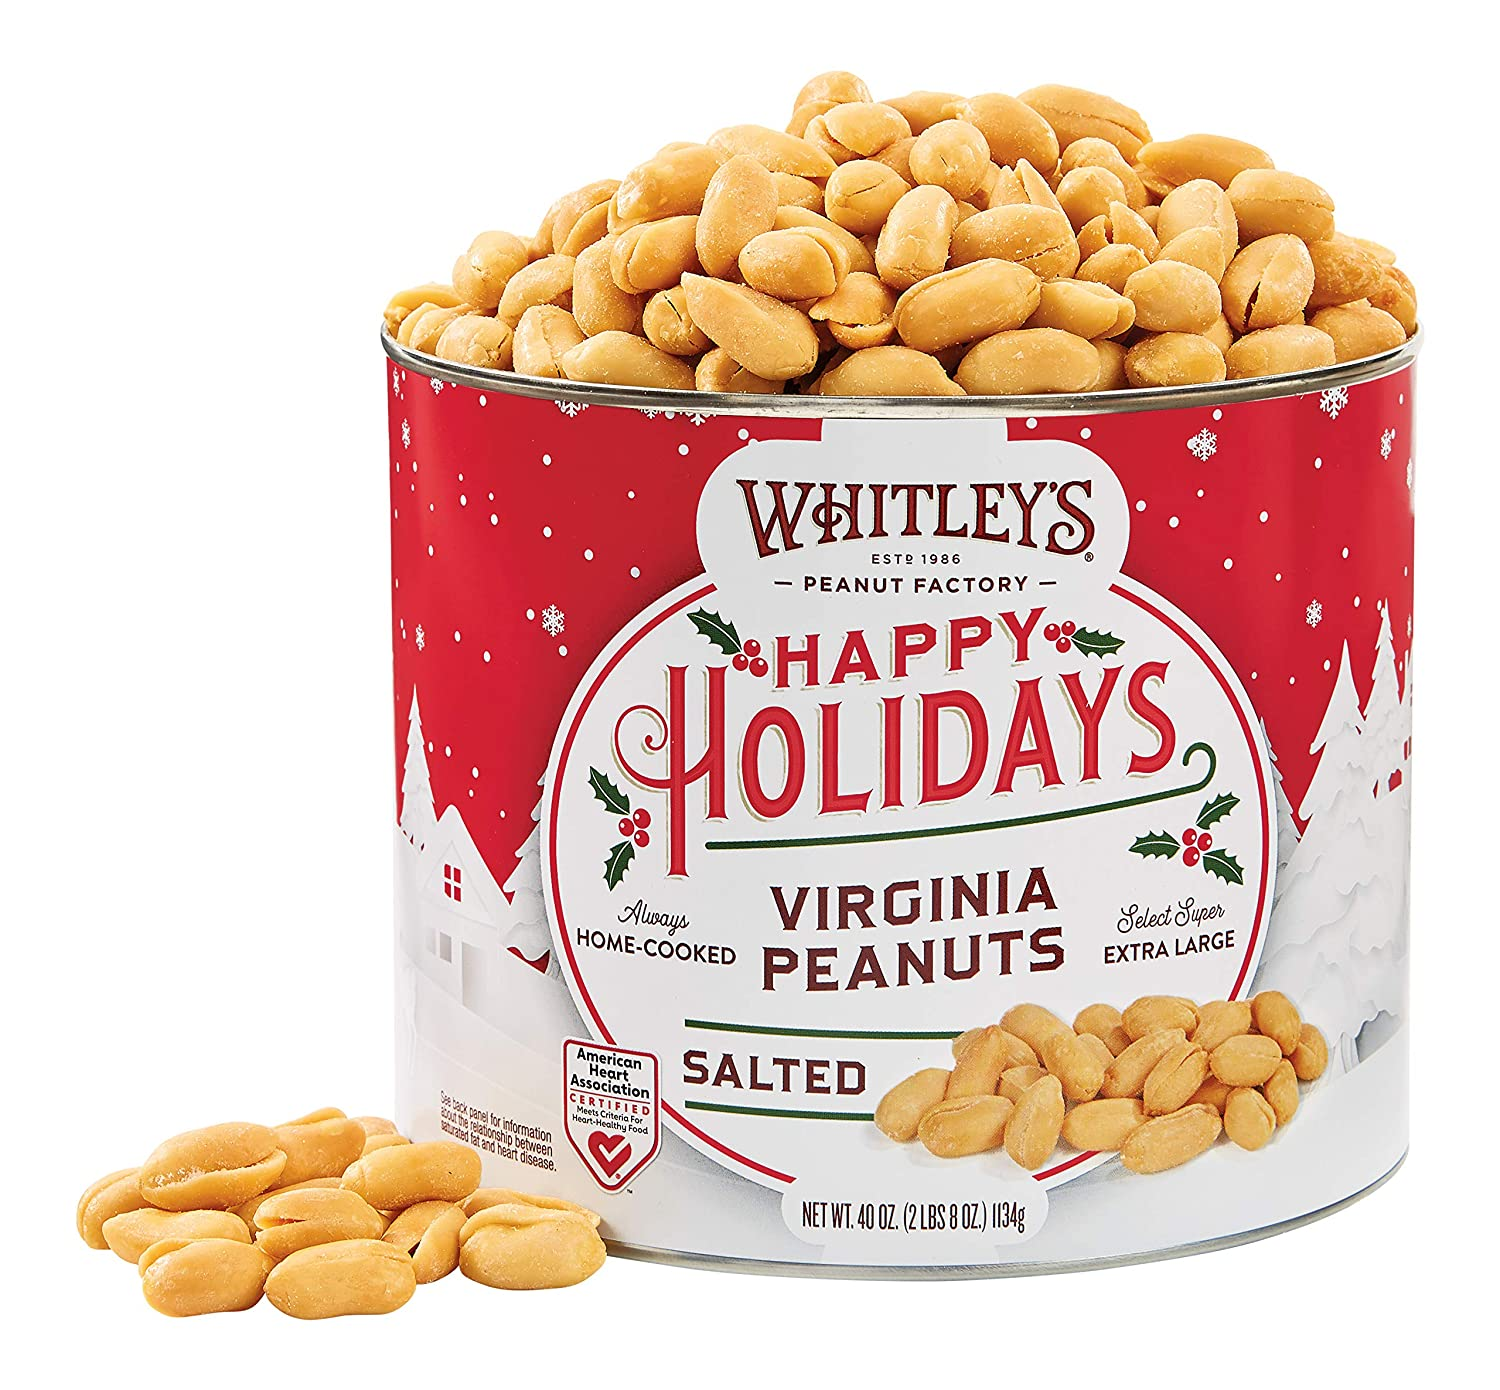 Whitley's Happy Holidays Label Home Cooked Salted Virginia Peanuts 40 OunceTin